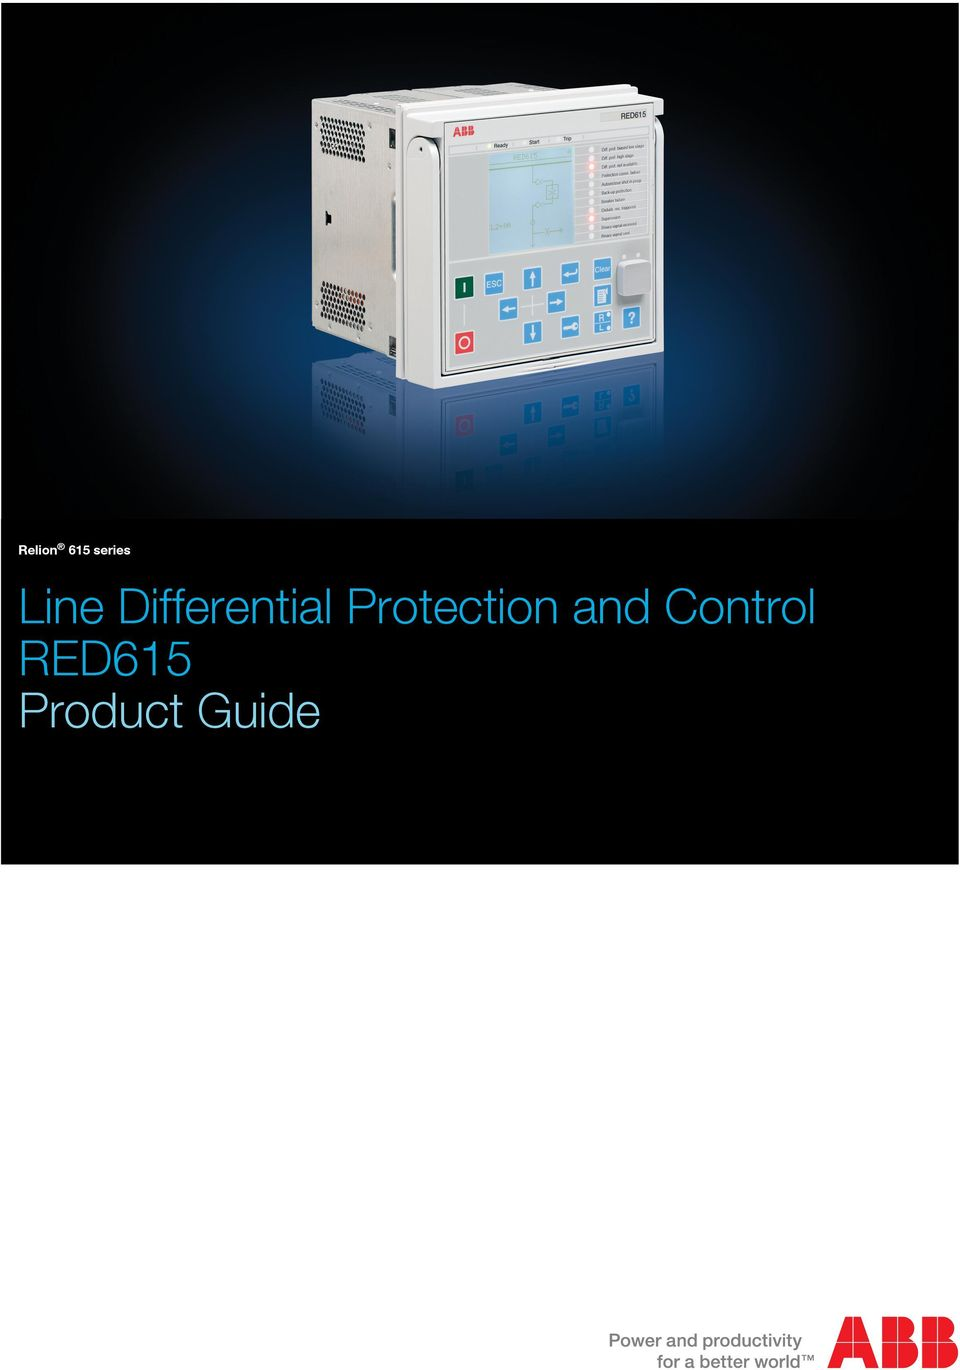 Relion 615 Series Line Differential Protection And Control Red615 Current Monitoring Relay Abb Description Standard Configurations Functions Application Supported Solutions Measurements Fault Location Disturbance Recorder Event